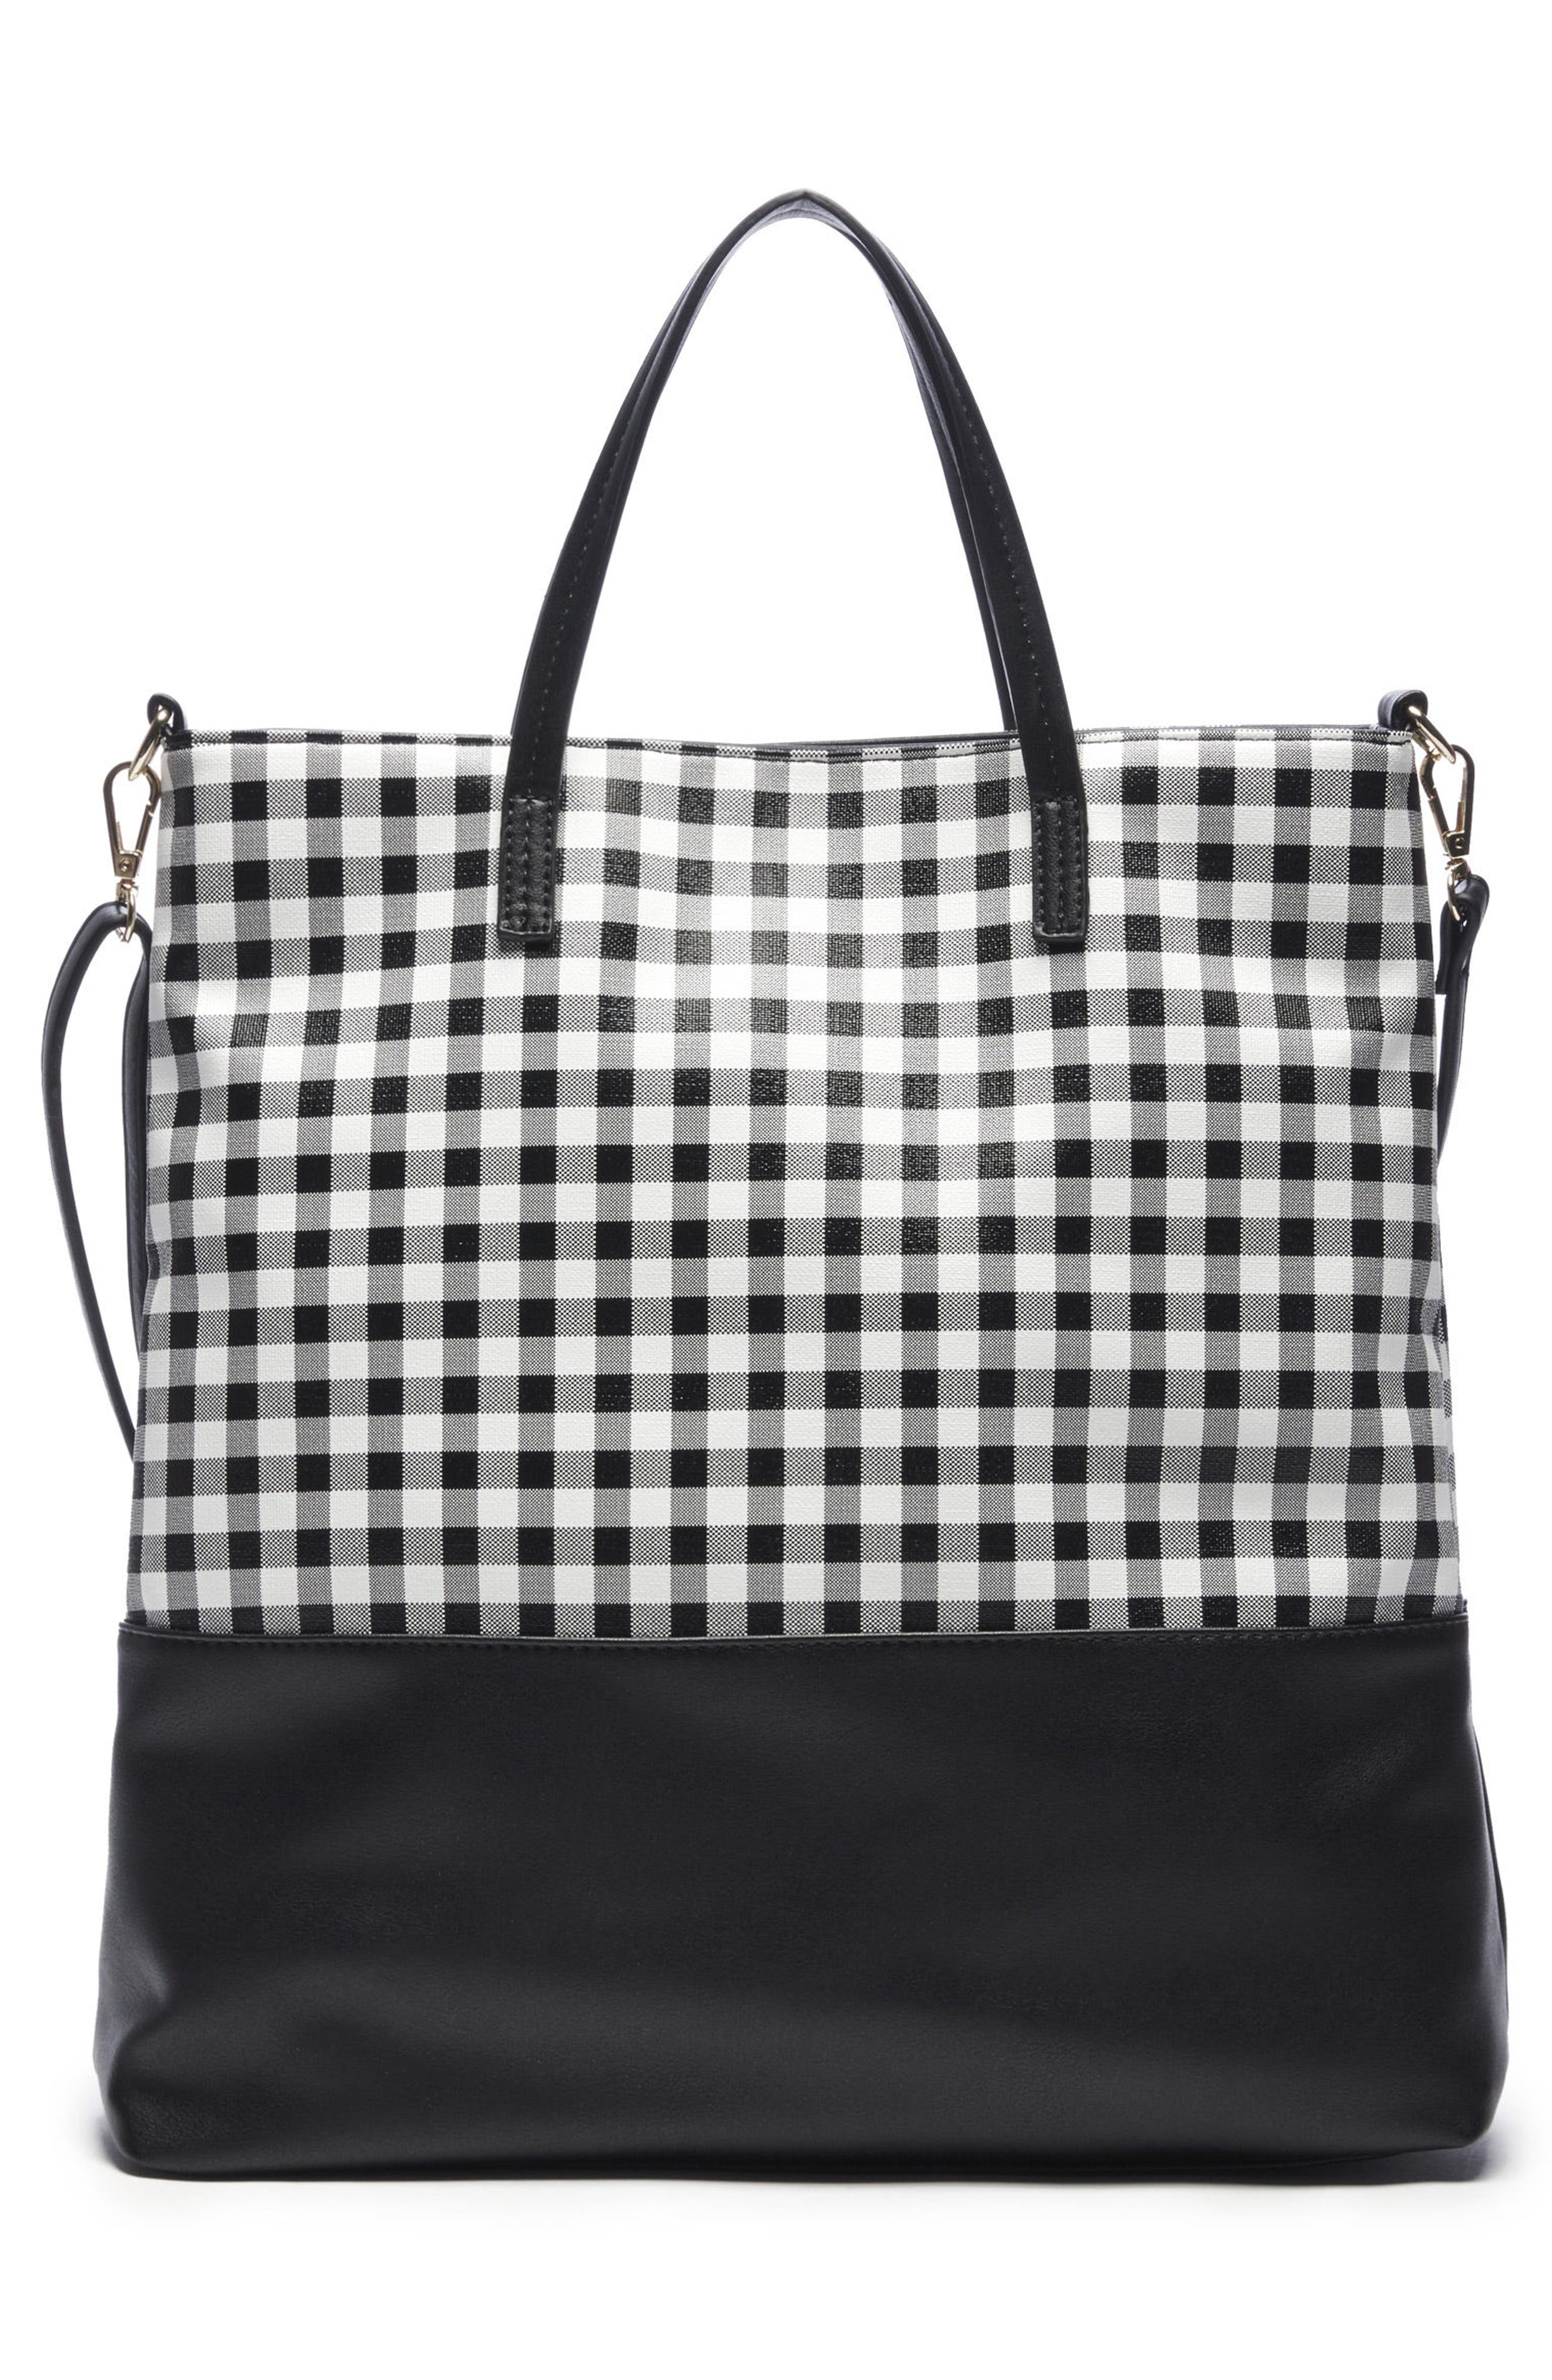 Gingham Faux Leather Tote,                             Alternate thumbnail 2, color,                             Black/ White